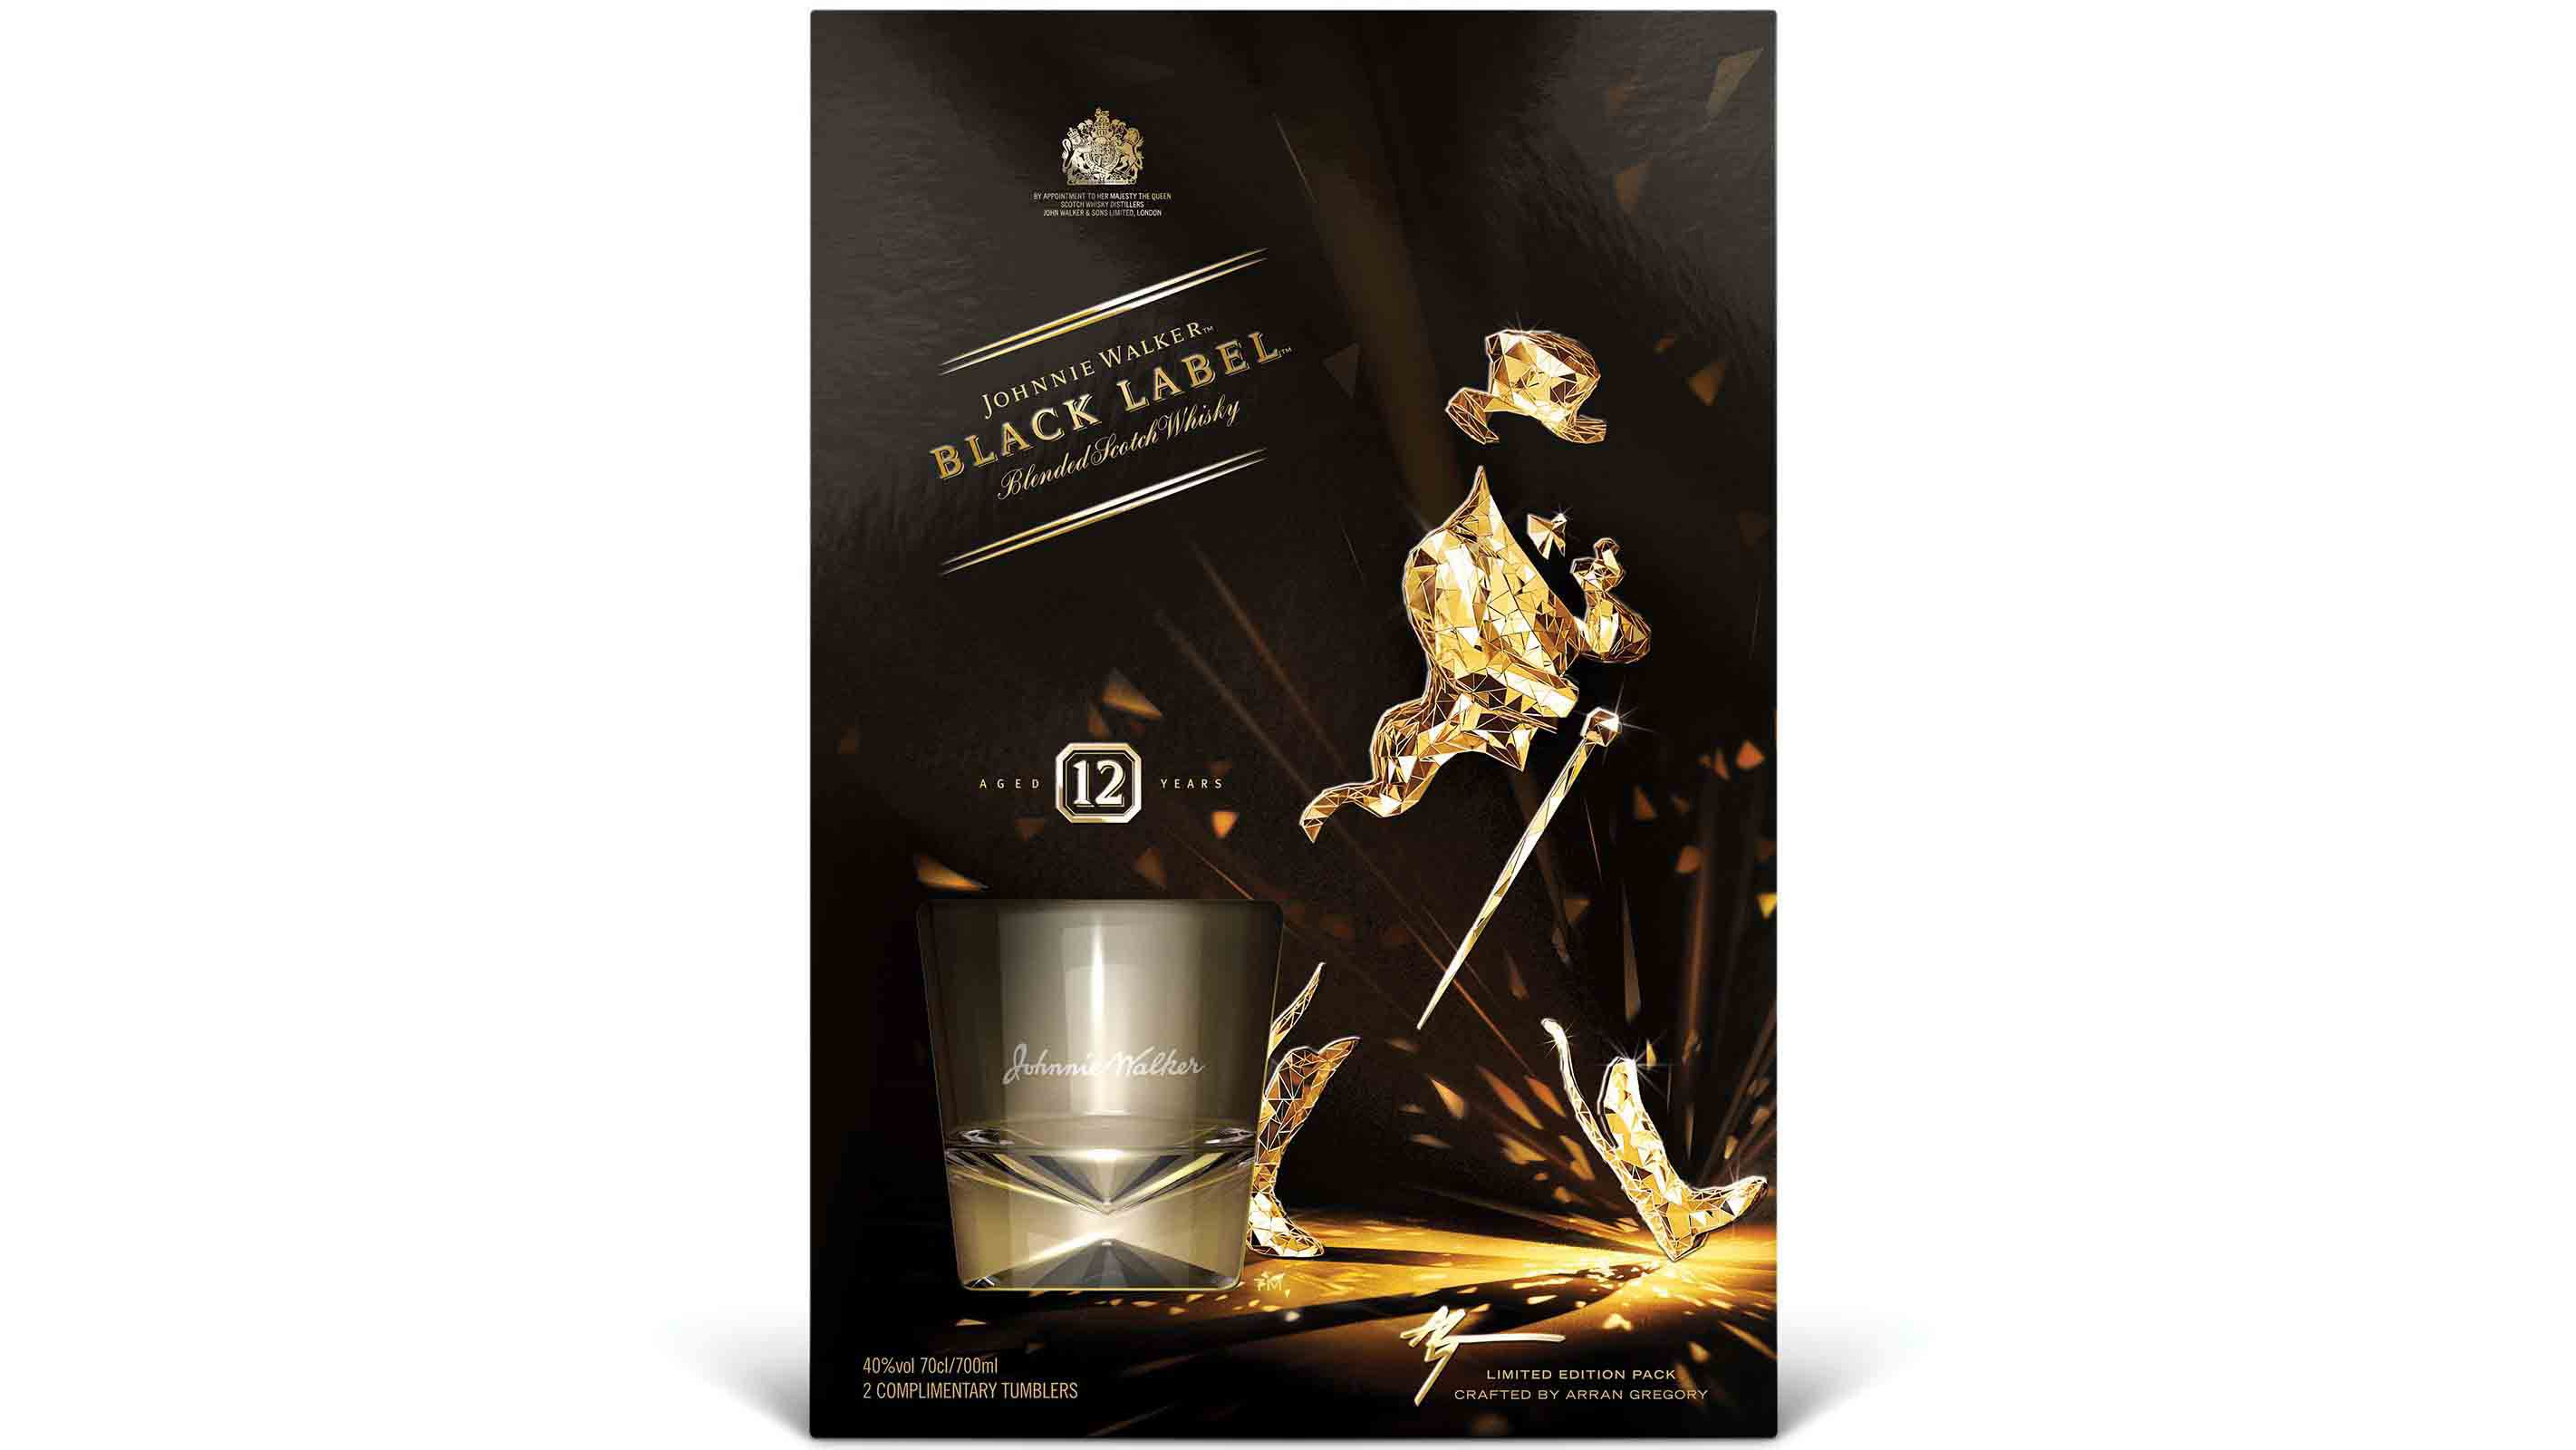 Johnnie Walker Black Label Limited Edition Pack crafted by Arran Gregory